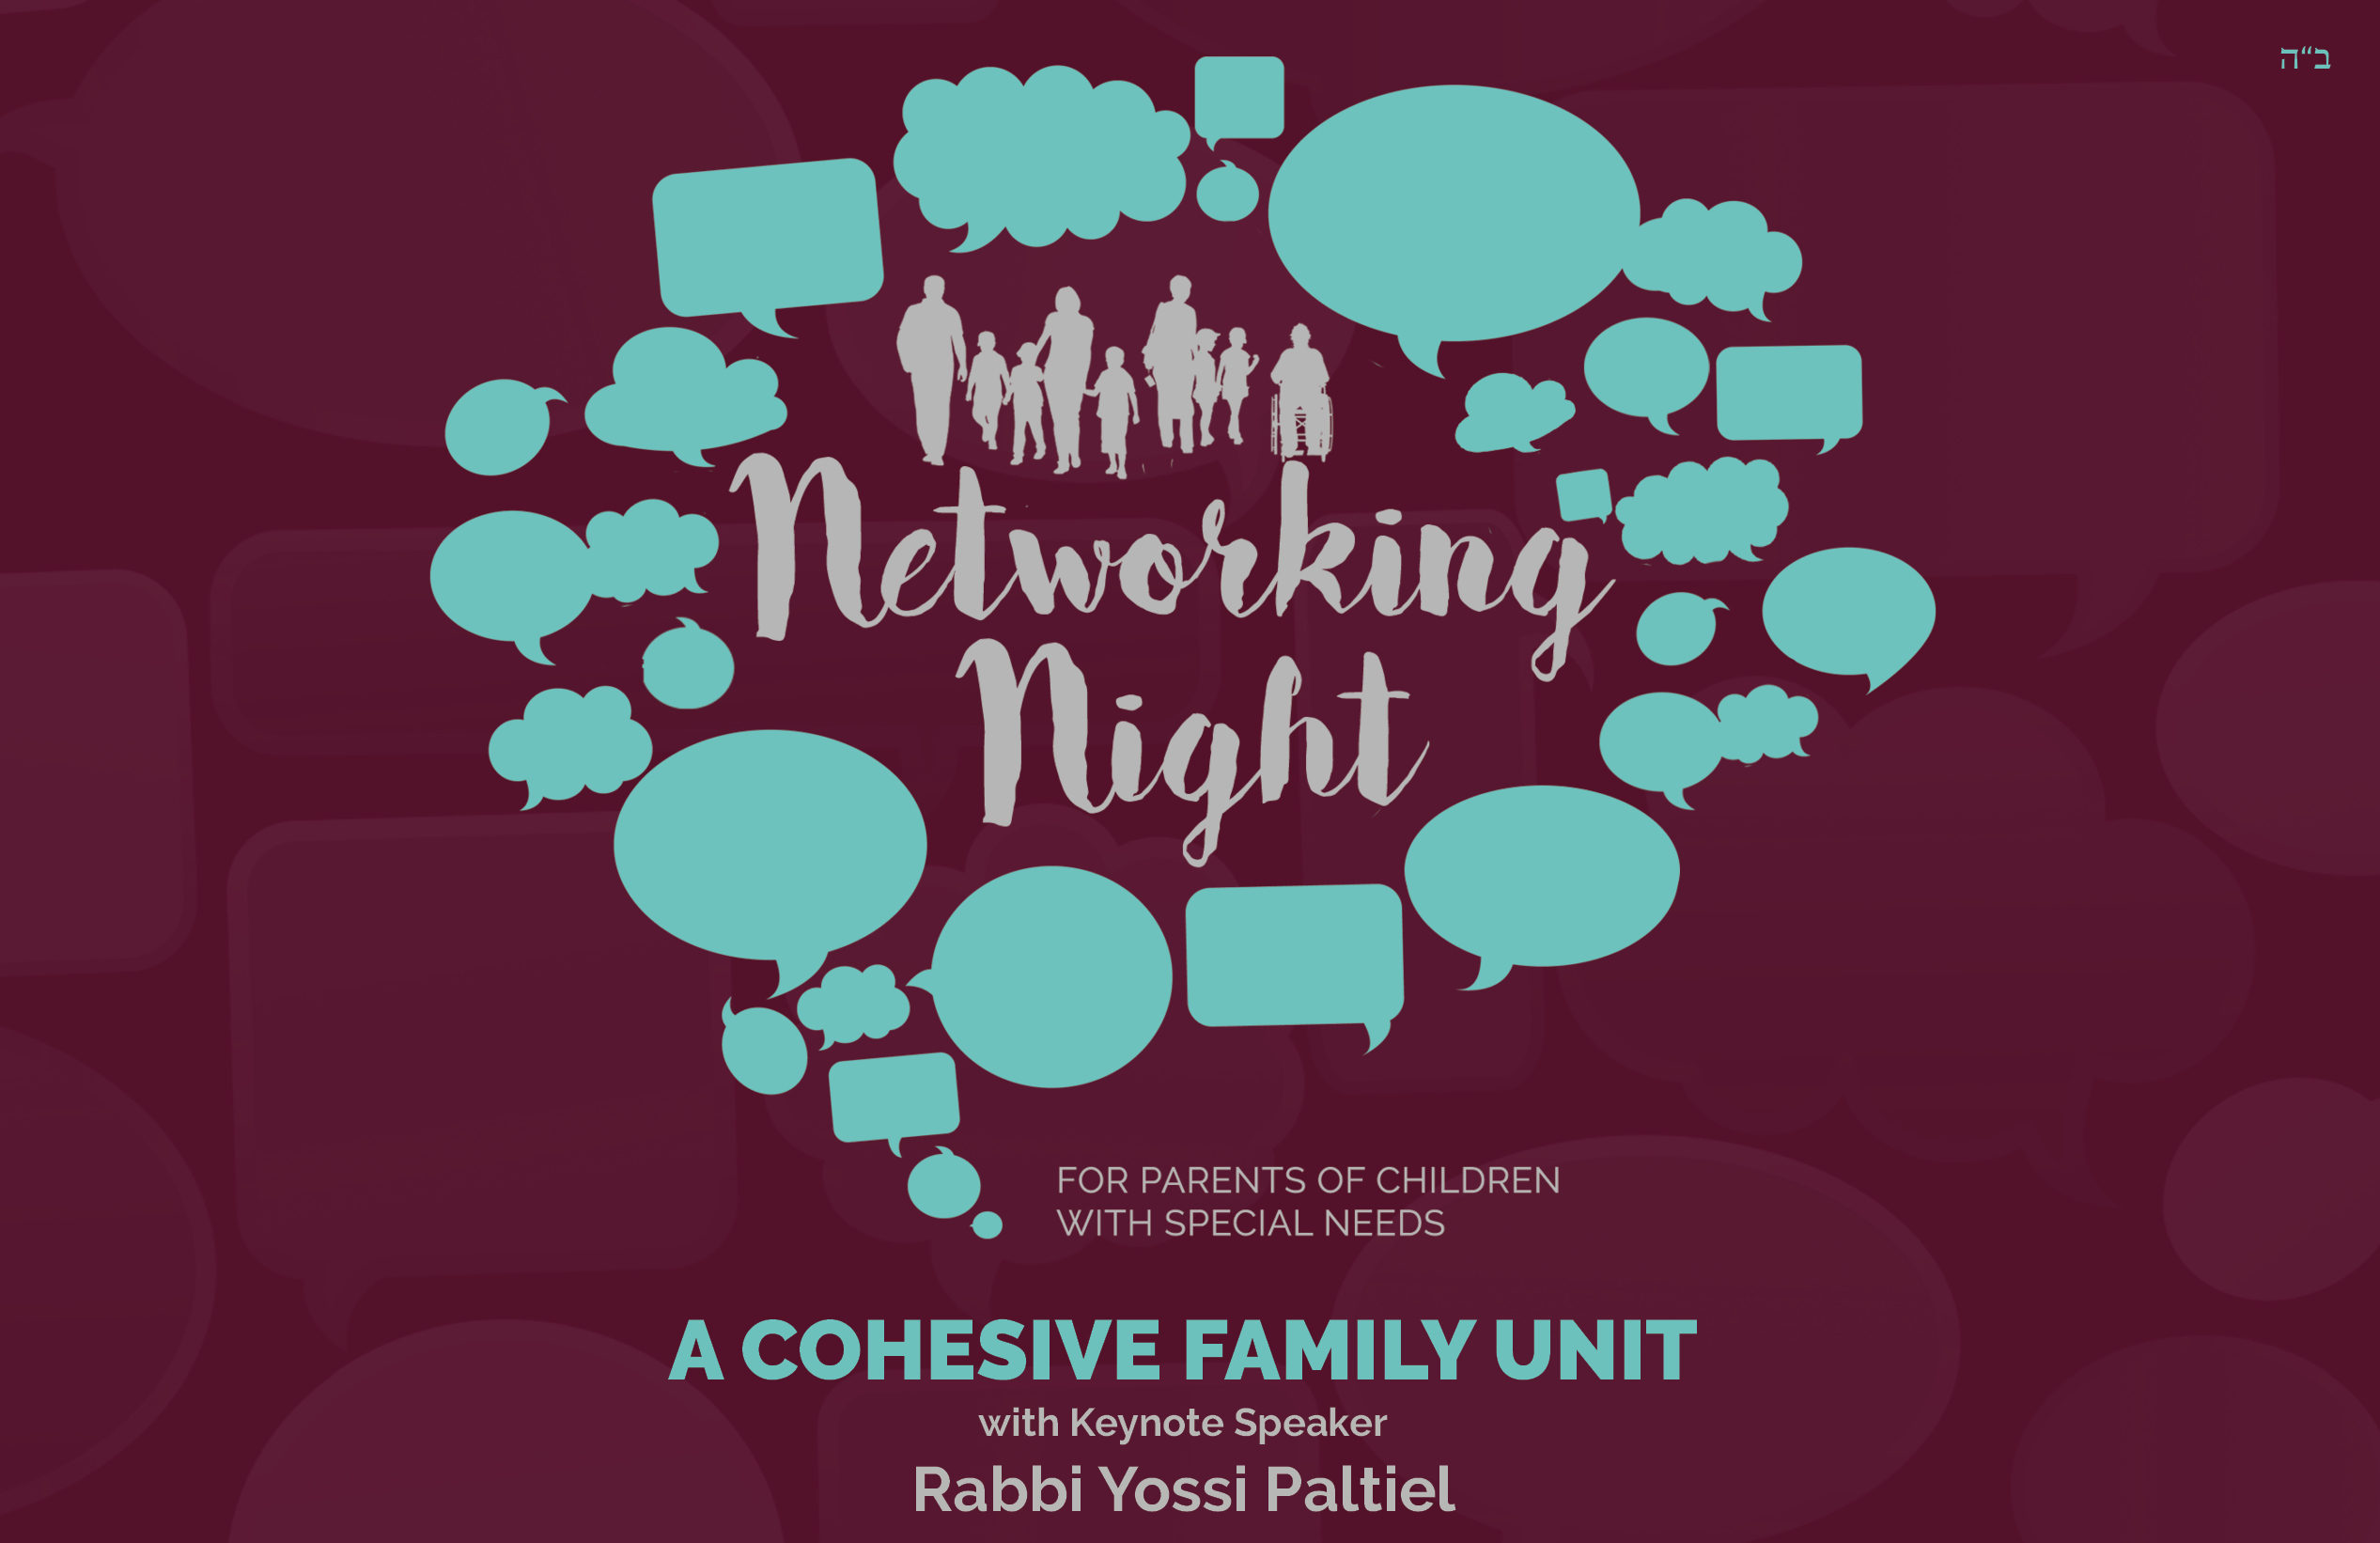 Networking Night: A Cohesive Family Unit